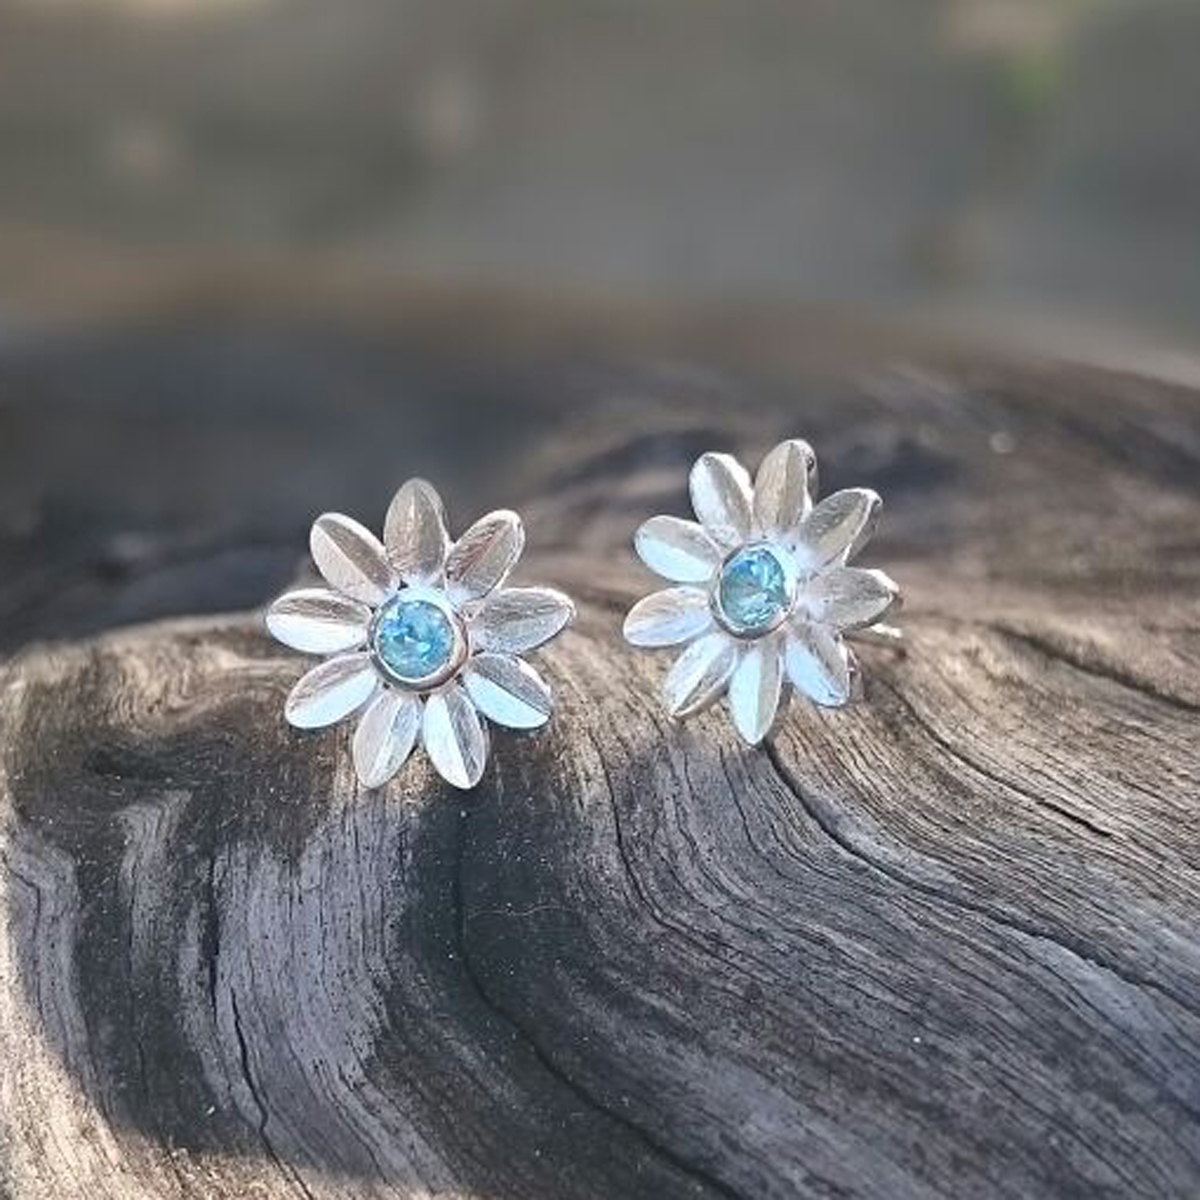 Silver floral designs made in Mauritius